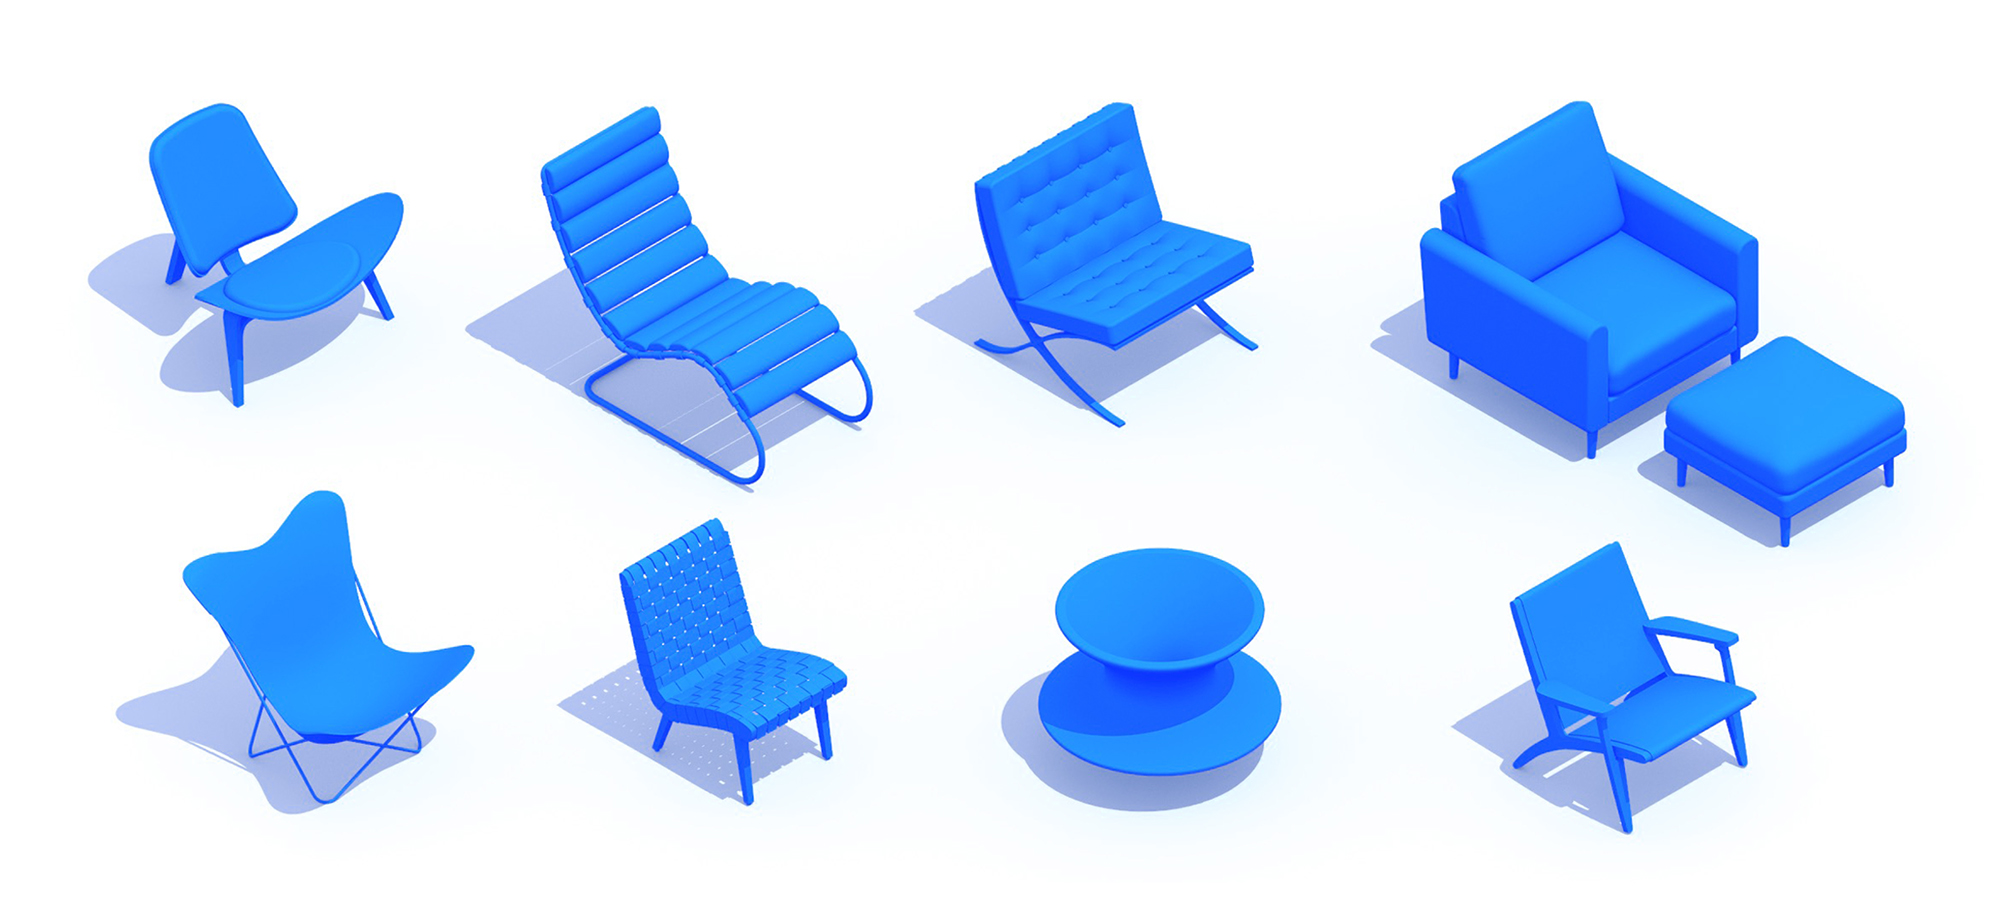 3D perspective of a collection of Lounge Chairs (Accent Chairs) showing many different sizes, styles, and designs